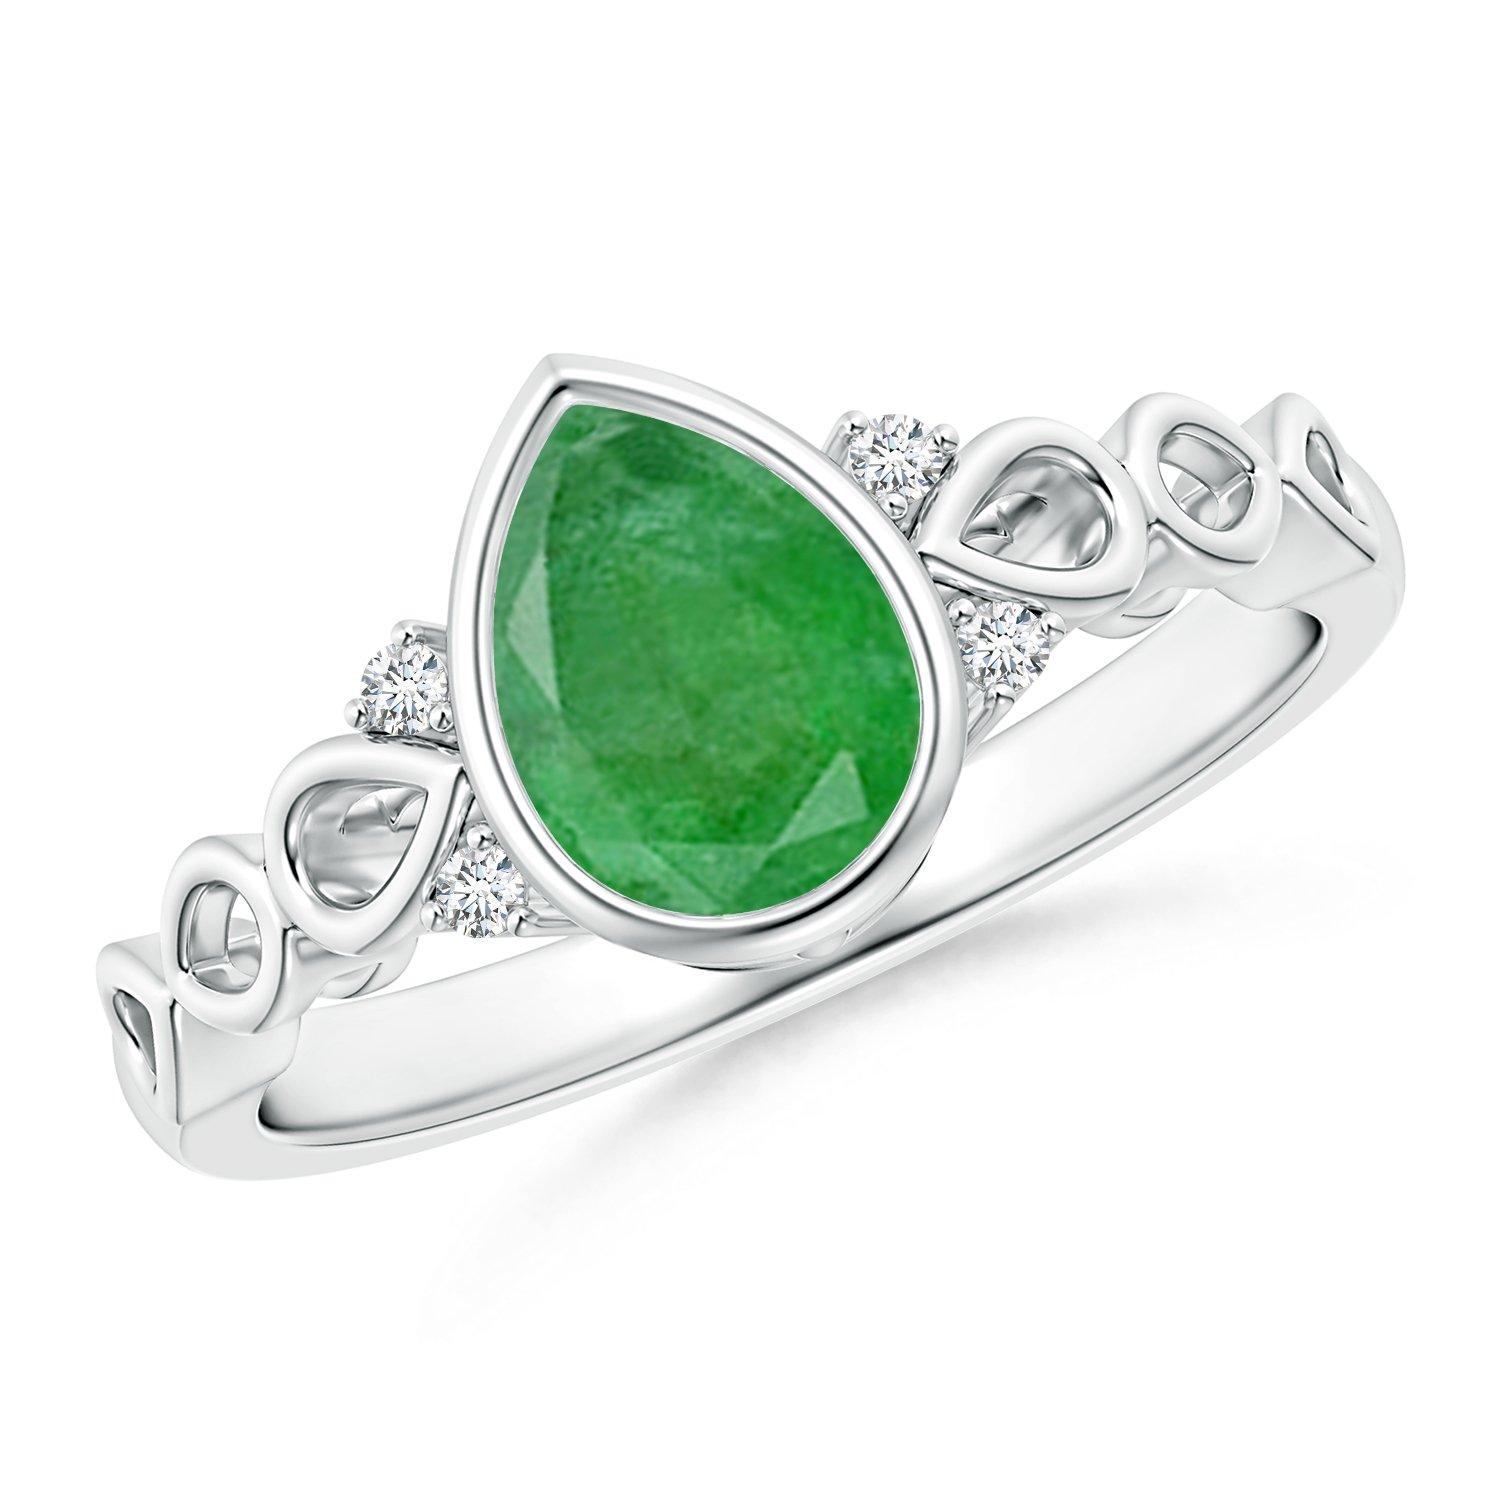 May Birthstone - Bezel Set Vintage Pear Emerald Ring for Women with Diamond Accents in 14K White Gold (8x6mm Emerald)